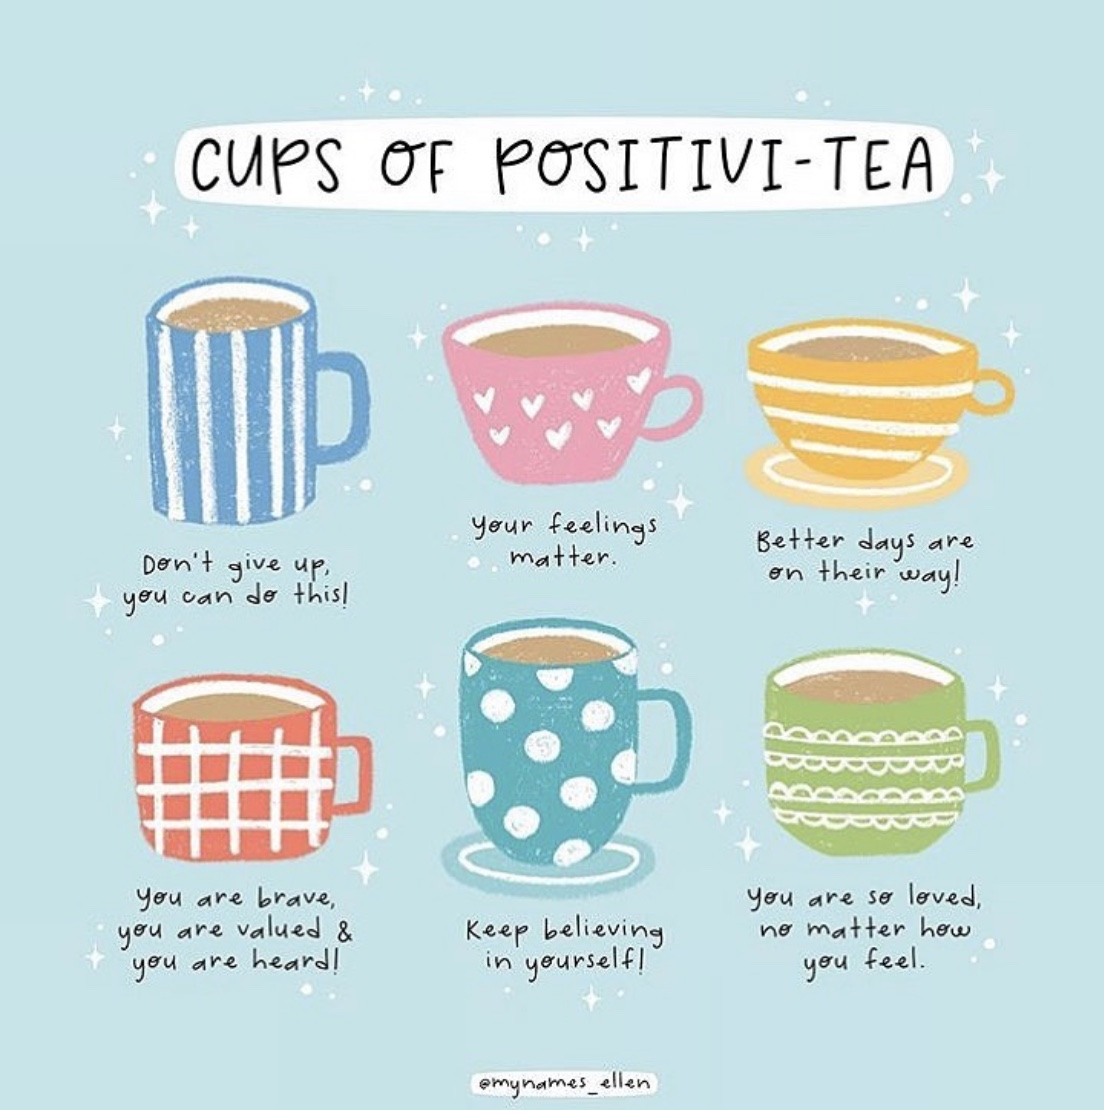 Make yourself some positivity-tea!  #affirmation #positivity #feelings #mindset pic.twitter.com/T5tGfcxorE